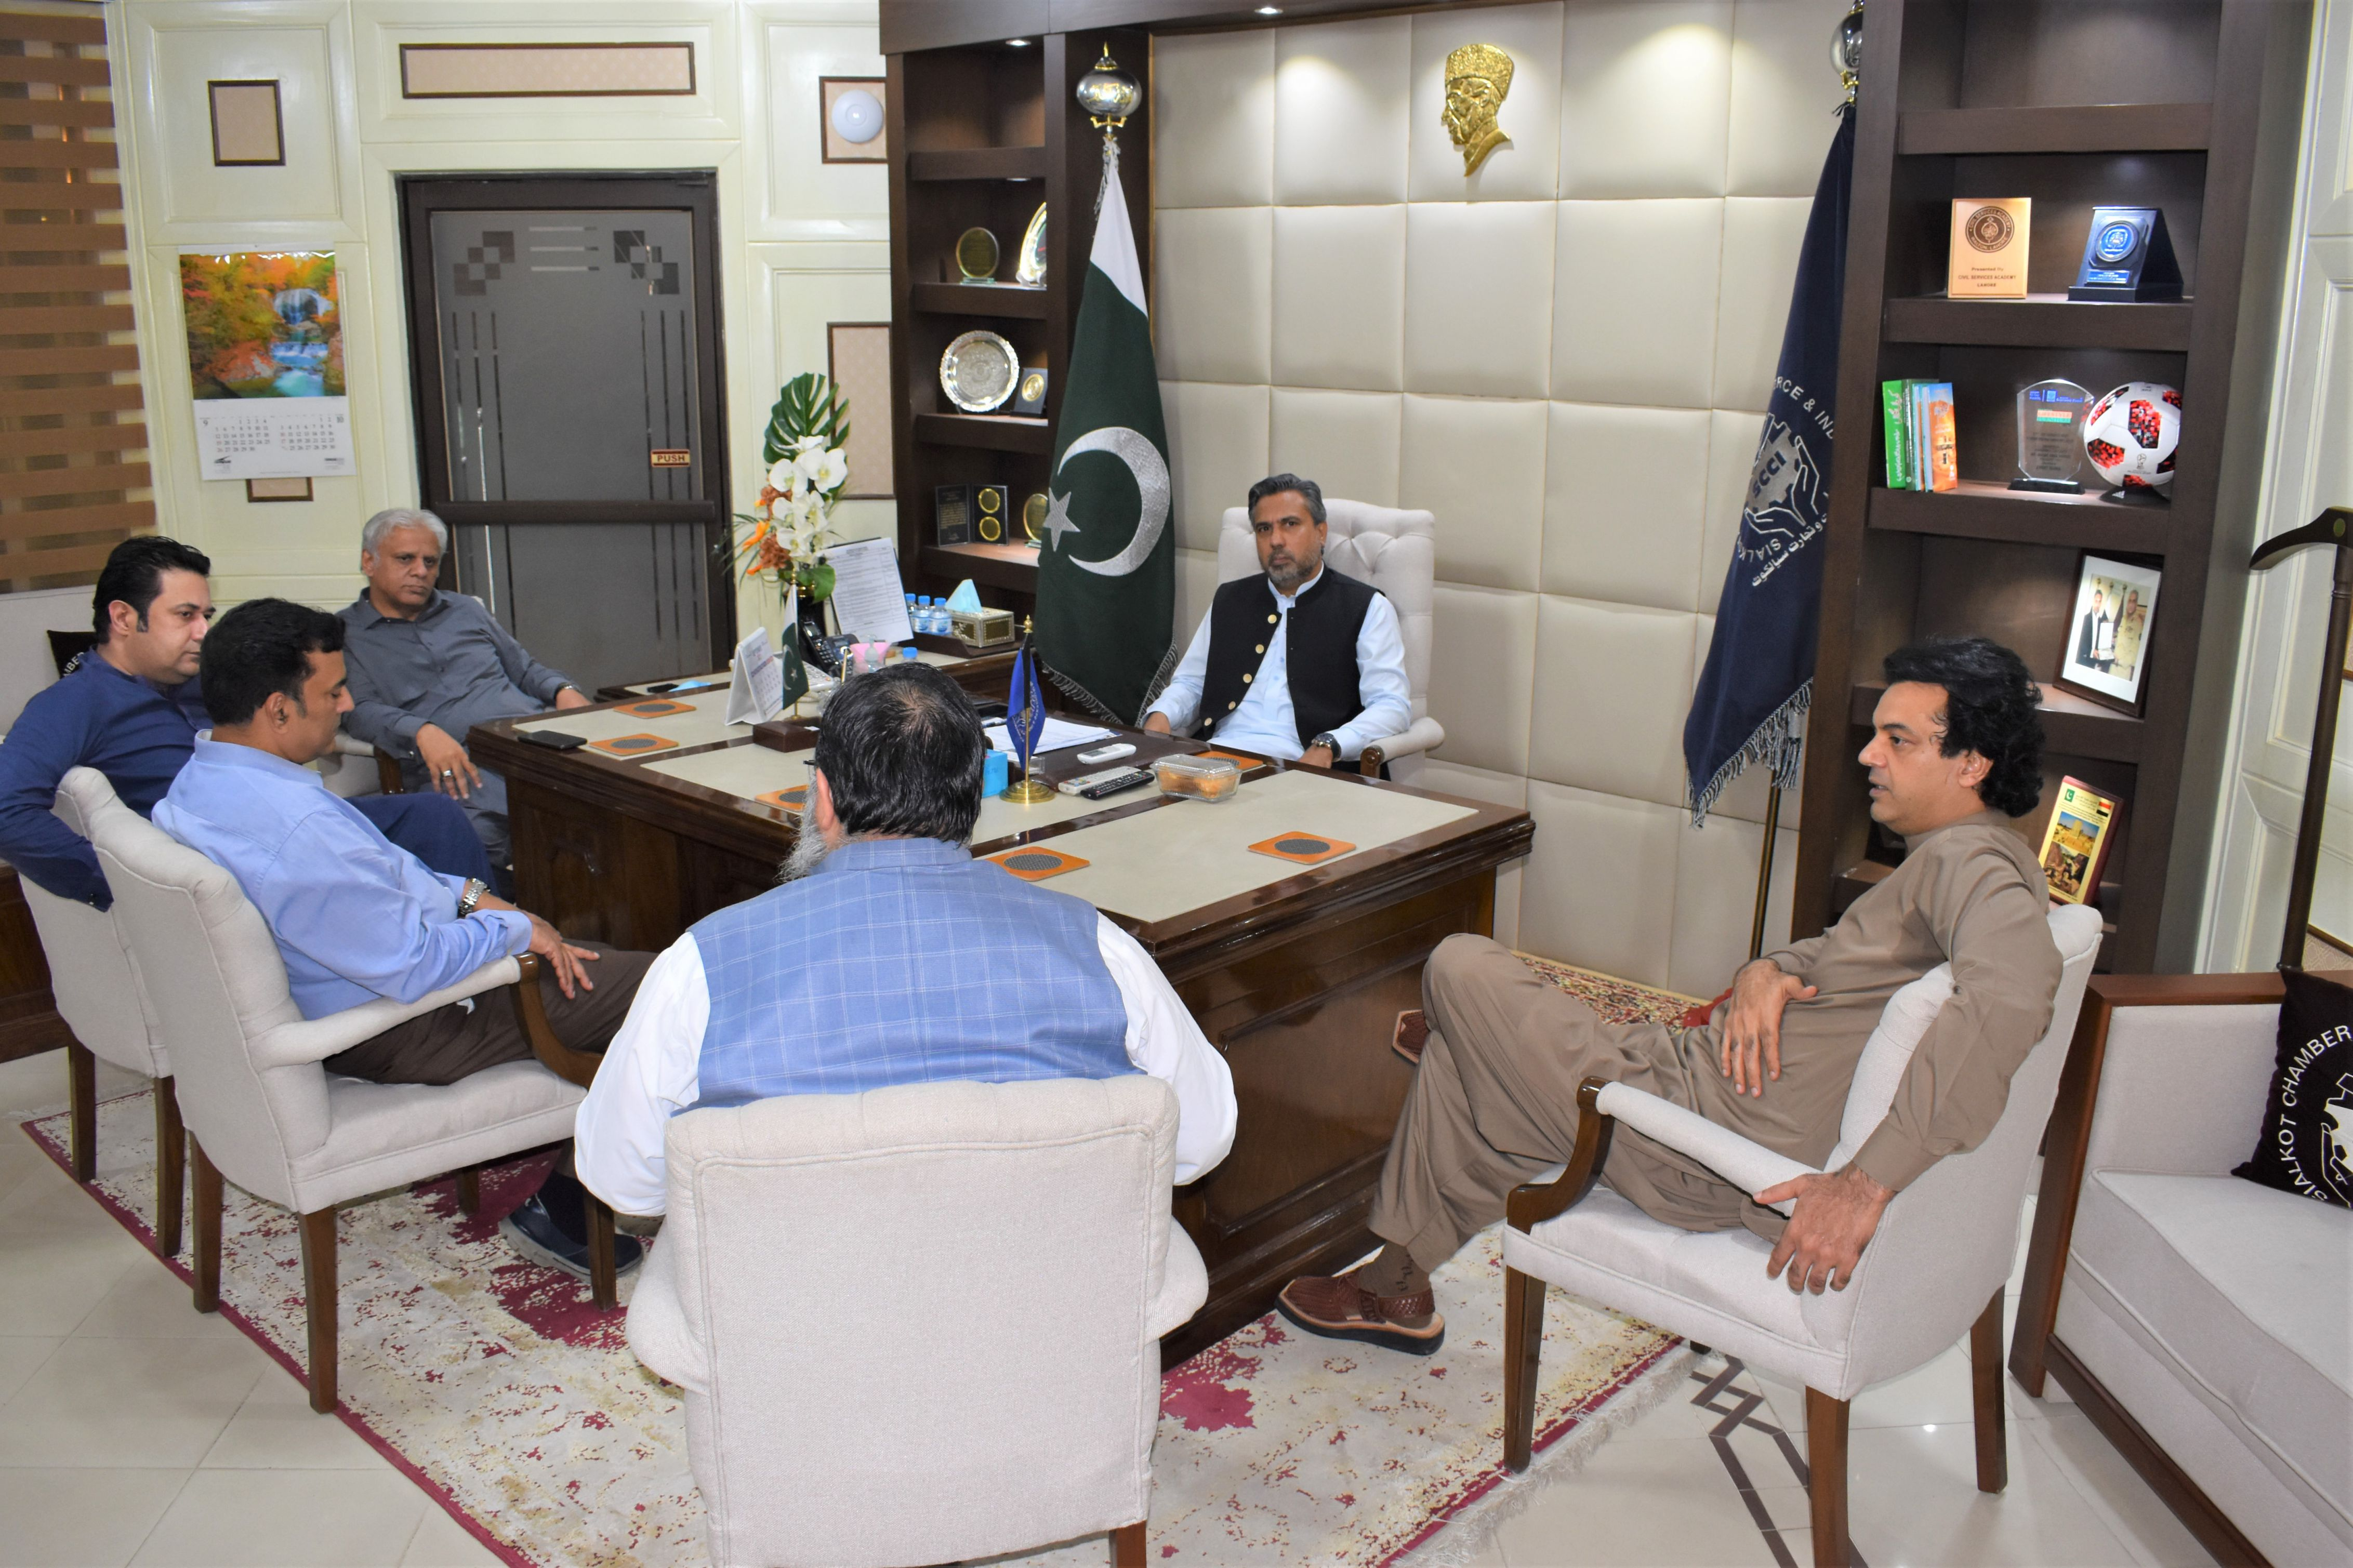 On September 10, 2021, Mr. Usman Dar, Special Assistant to Prime Minister on Youth Affairs visited Sialkot Chamber of Commerce & Industry to discuss matters related to Industry of Sialkot. Mr. Qaisar Iqbal Baryar, President, Mr. Khuram Aslam, Senior Vice President, Mr. Ansar Aziz Puri, Vice President, SCCI and Executive Committee Members of SCCI received the Guest.